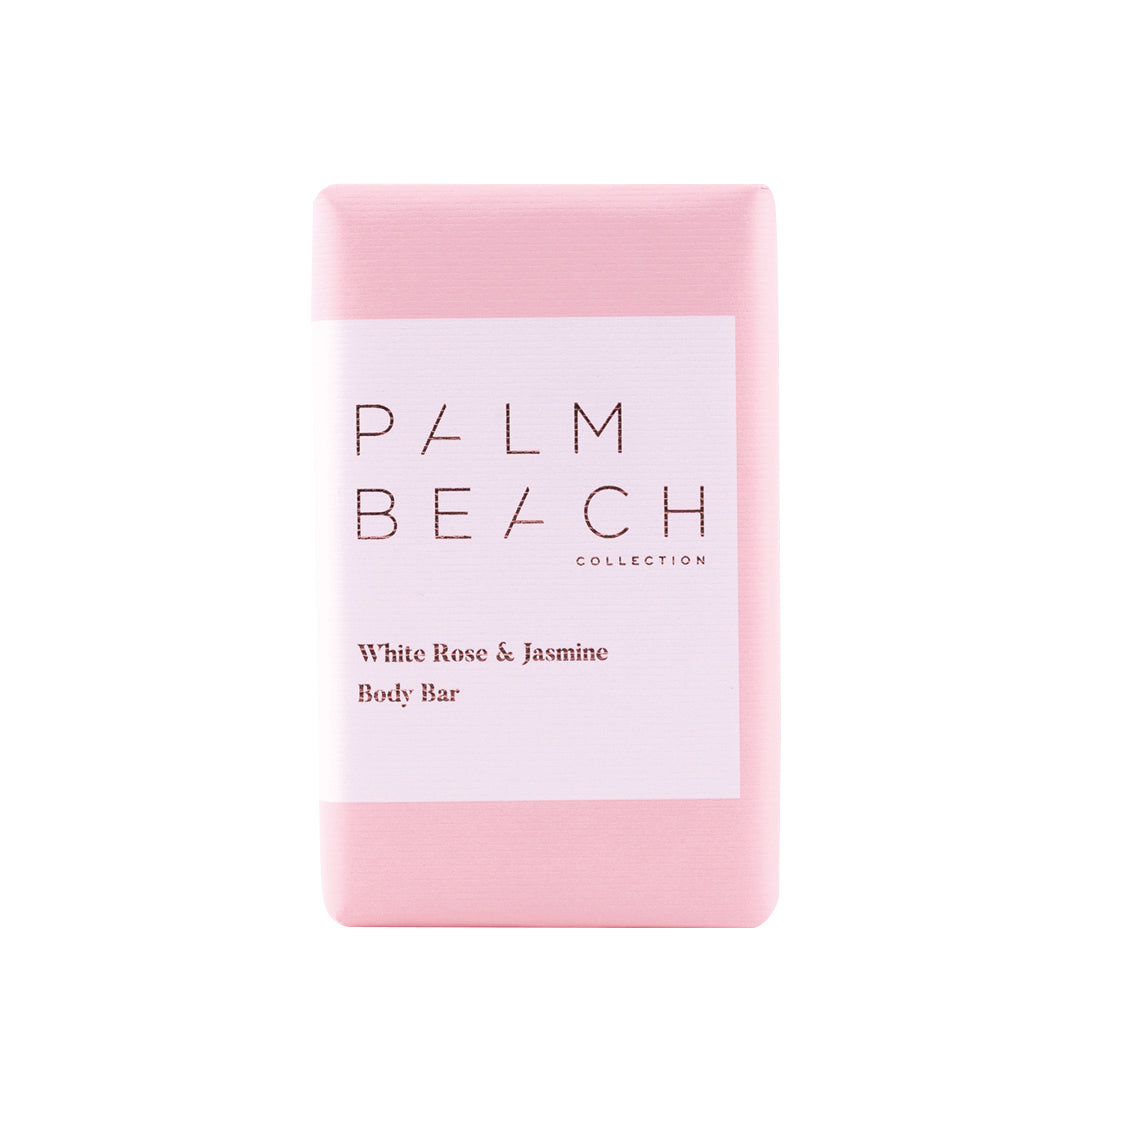 Palm Beach Body Bar White Rose & Jasmine